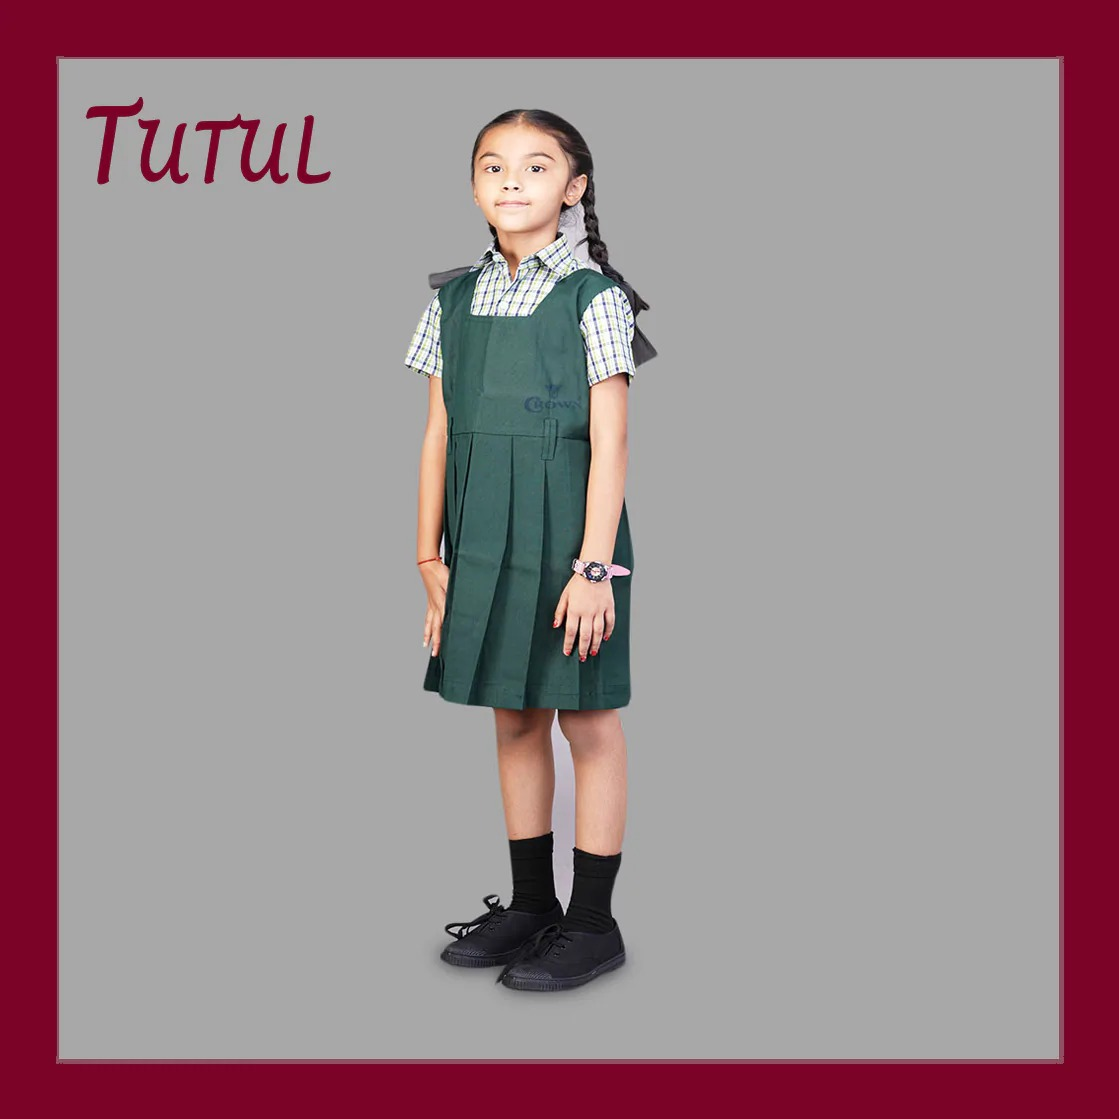 Tutul TN Govt 1 - 5th Std Bottle Green Colour Pinafore (6-7 Years)